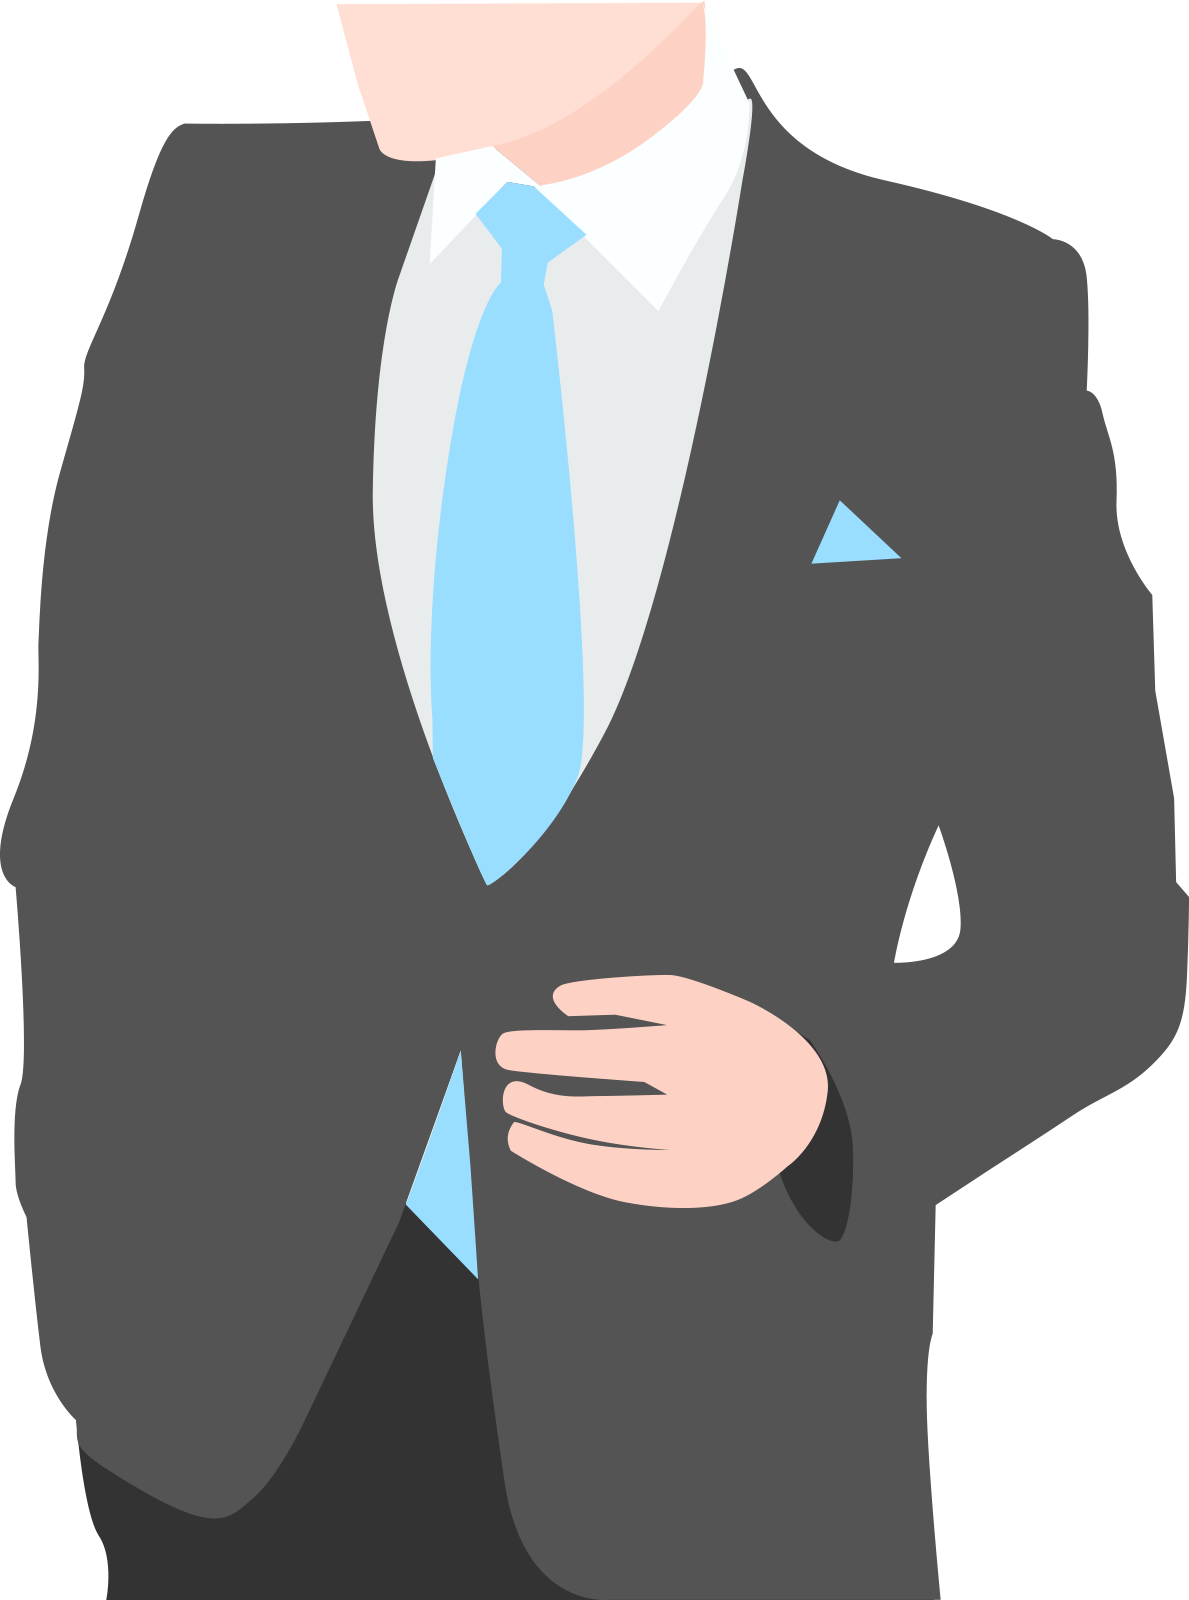 Business attire with a breast pocket handkerchief